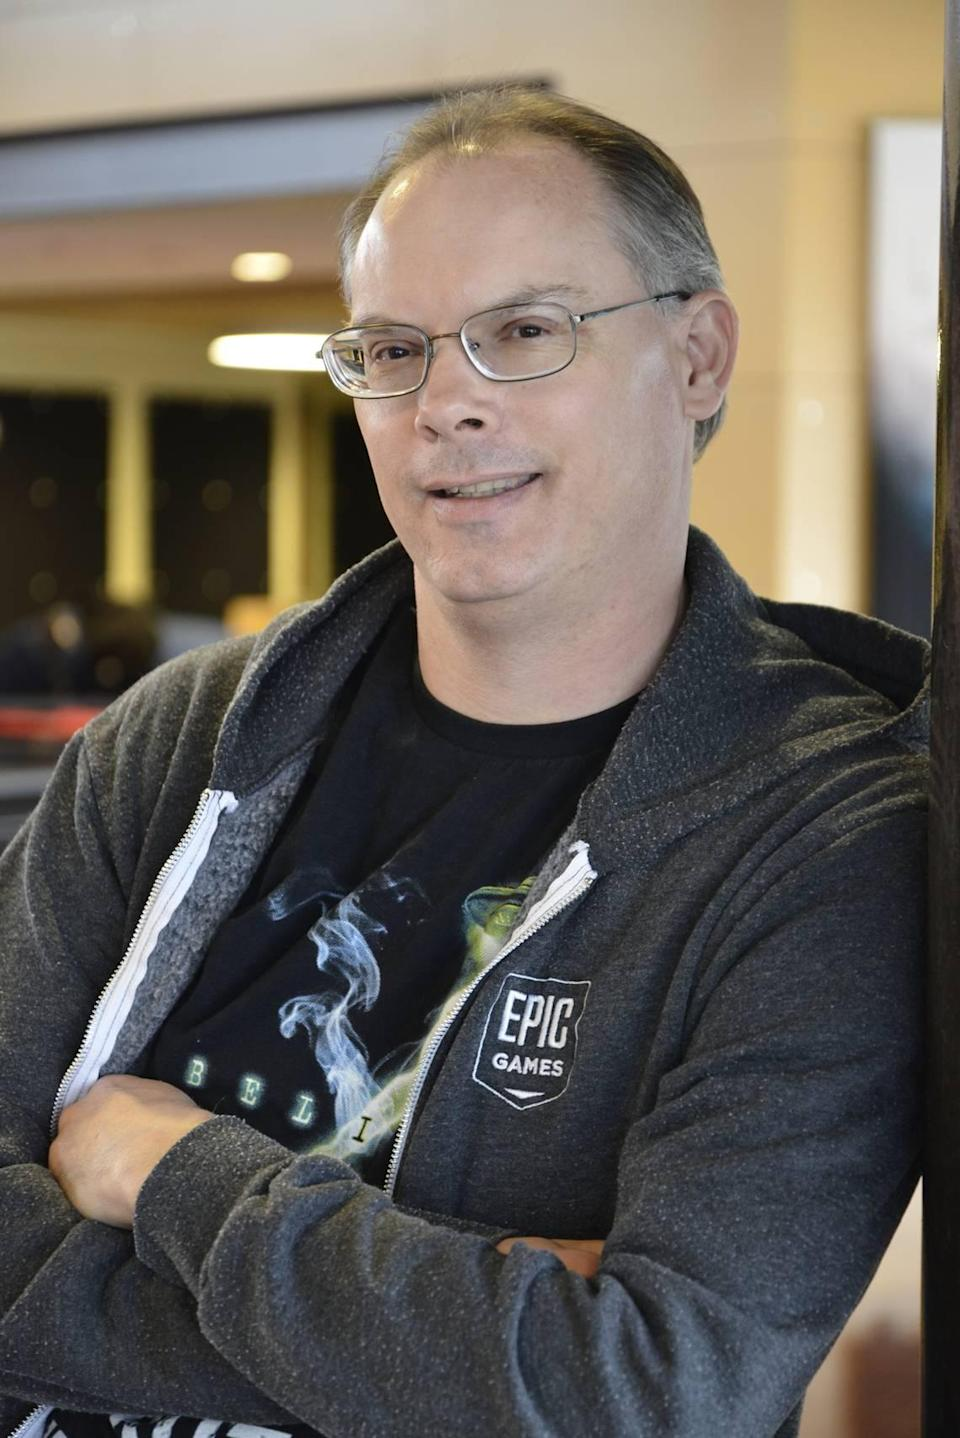 """Tim Sweeney is the founder and CEO of Epic Games, the Cary, NC-based company behind the """"Fortnite"""" video game. Sweeney is one of North Carolina's most prolific conservationists, saving nearly 50,000 acres of forest land."""